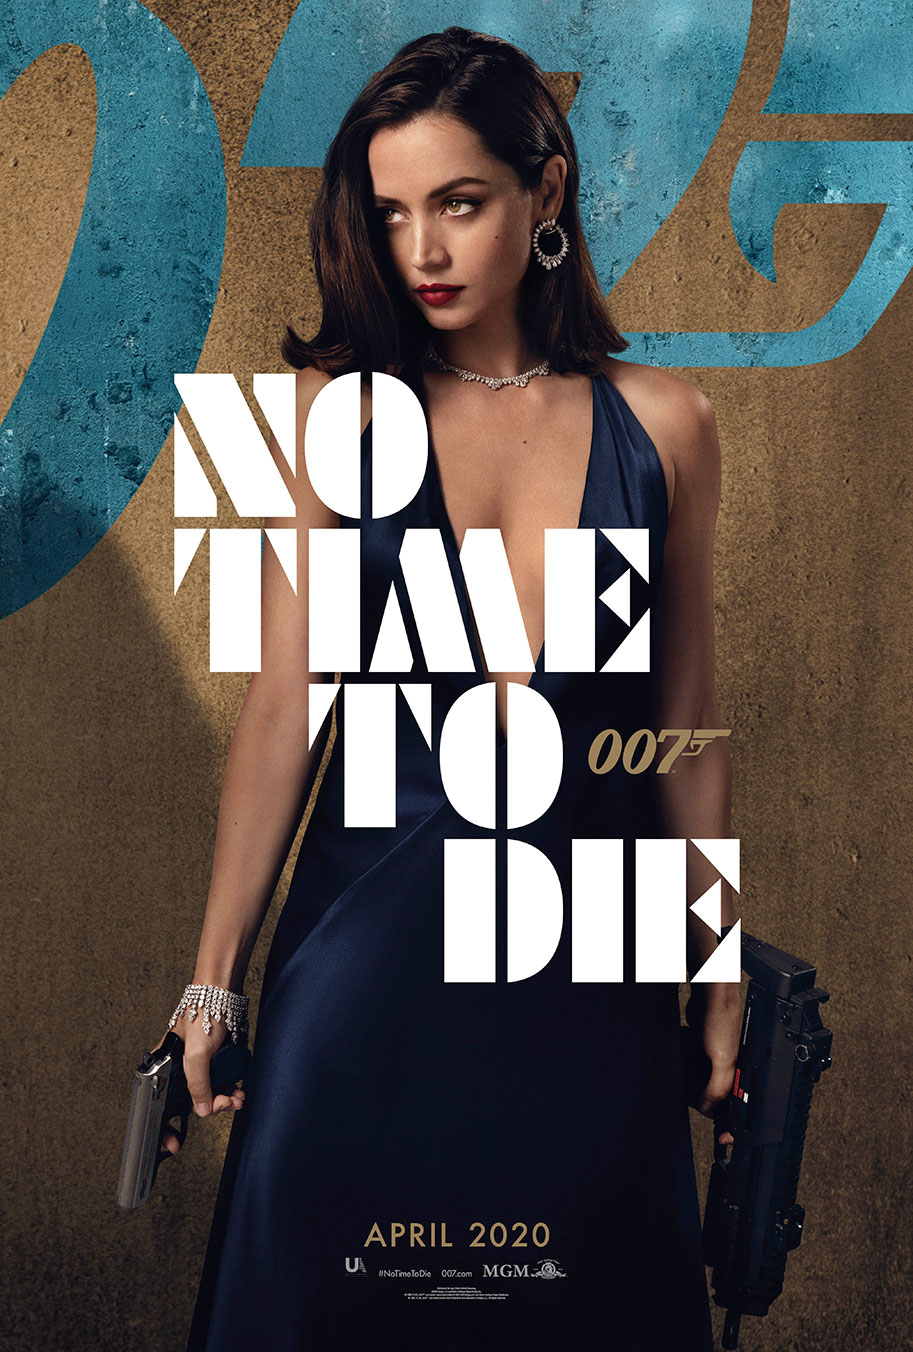 NO TIME TO DIE POSTER (#10 OF 12) - OKAY BHARGAV